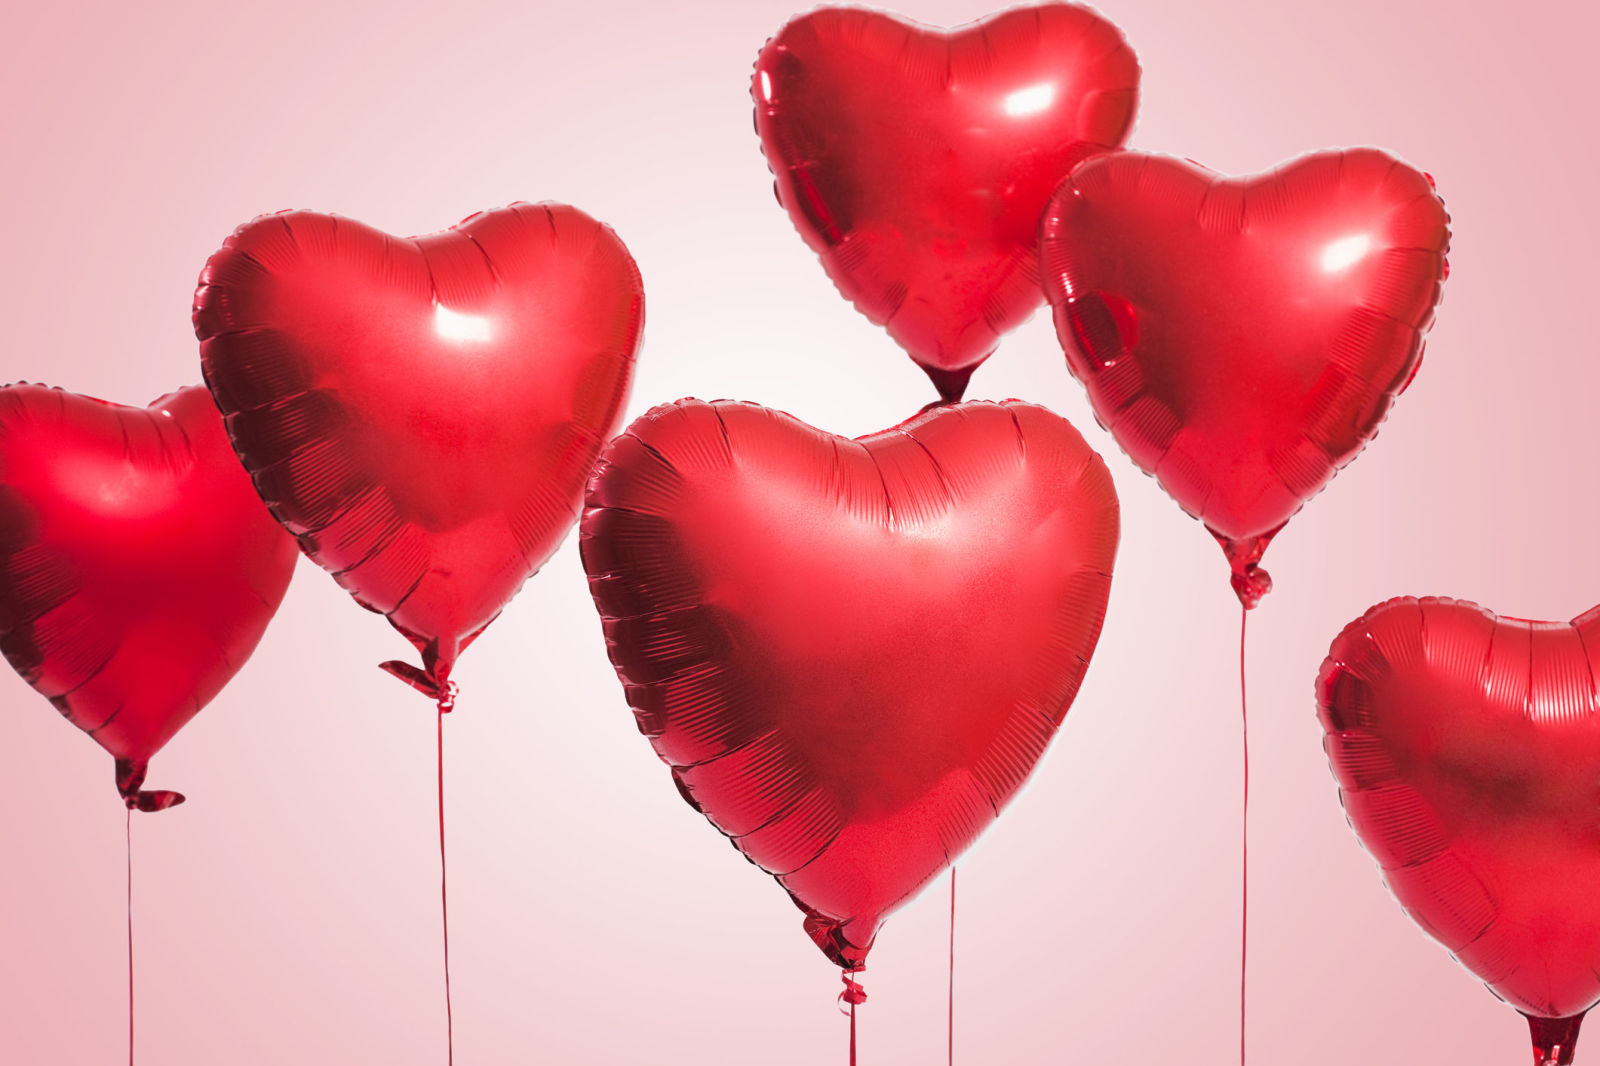 Staying the course and the true meaning of Valentine